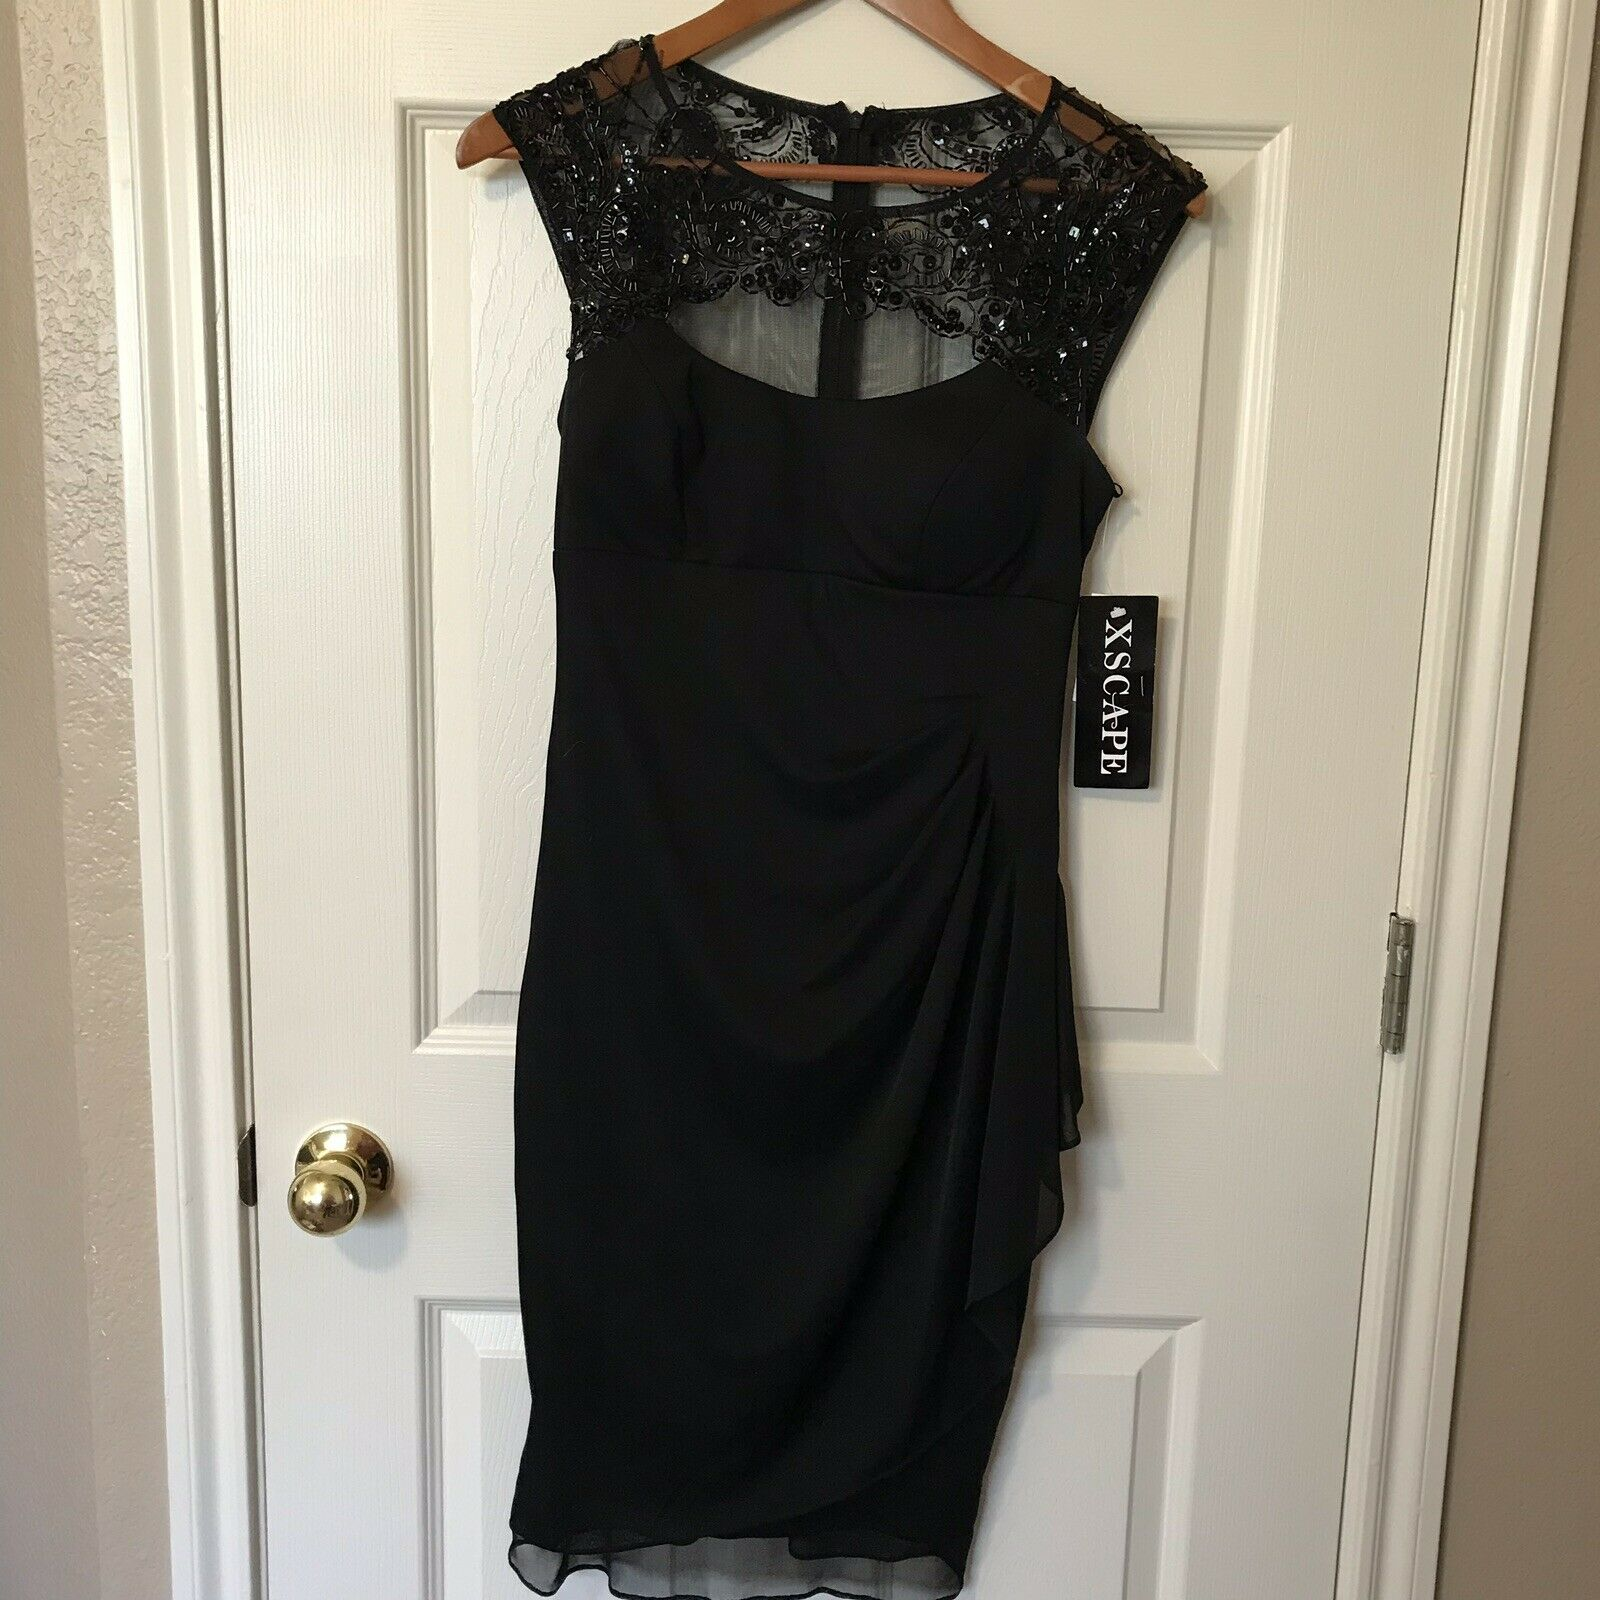 Xscape By Joanna Chen schwarz Bridesmaids Dress Lace Top back SZ 6 J